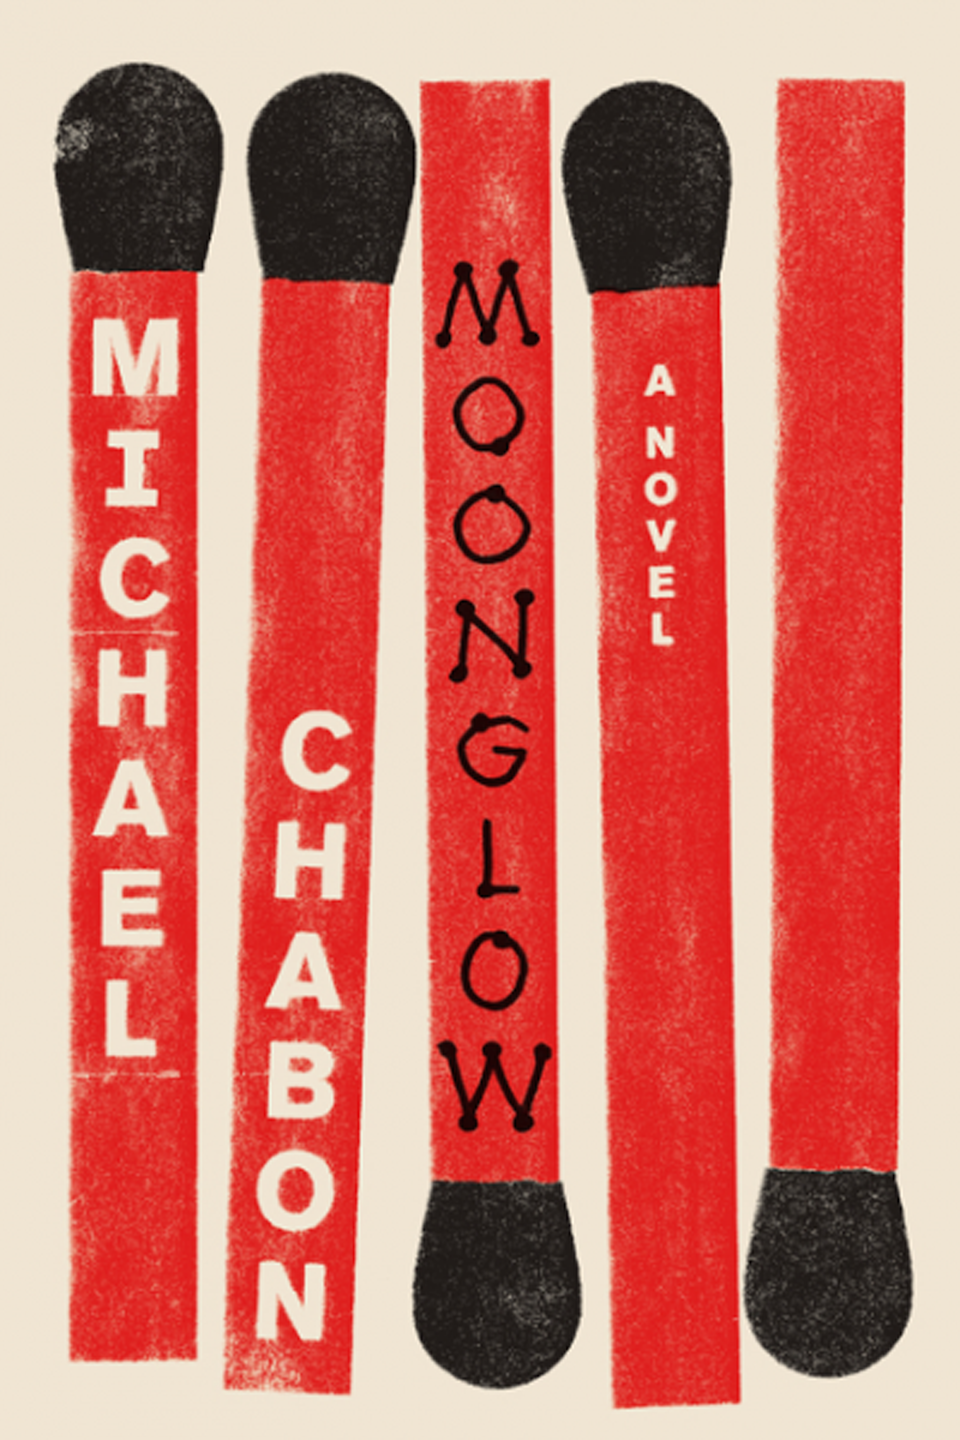 <p><strong><em>Moonglow</em></strong></p><p>By Michael Chabon</p><p>Pulitzer Prize-winning author Michael Chabon's latest novel is based on the stories of his own terminally ill grandfather, who, thanks to the tongue-loosening effects of his powerful painkillers, told Chabon stories he'd never heard before just before he died in 1989.</p><p>Touching on themes as wide-ranging as madness, war and adventure, sex and marriage and desire, existential doubt and, above all, the destructive impact and creative power of keeping secrets and telling lies, <em>Moonglow</em> is well worth your time.</p>